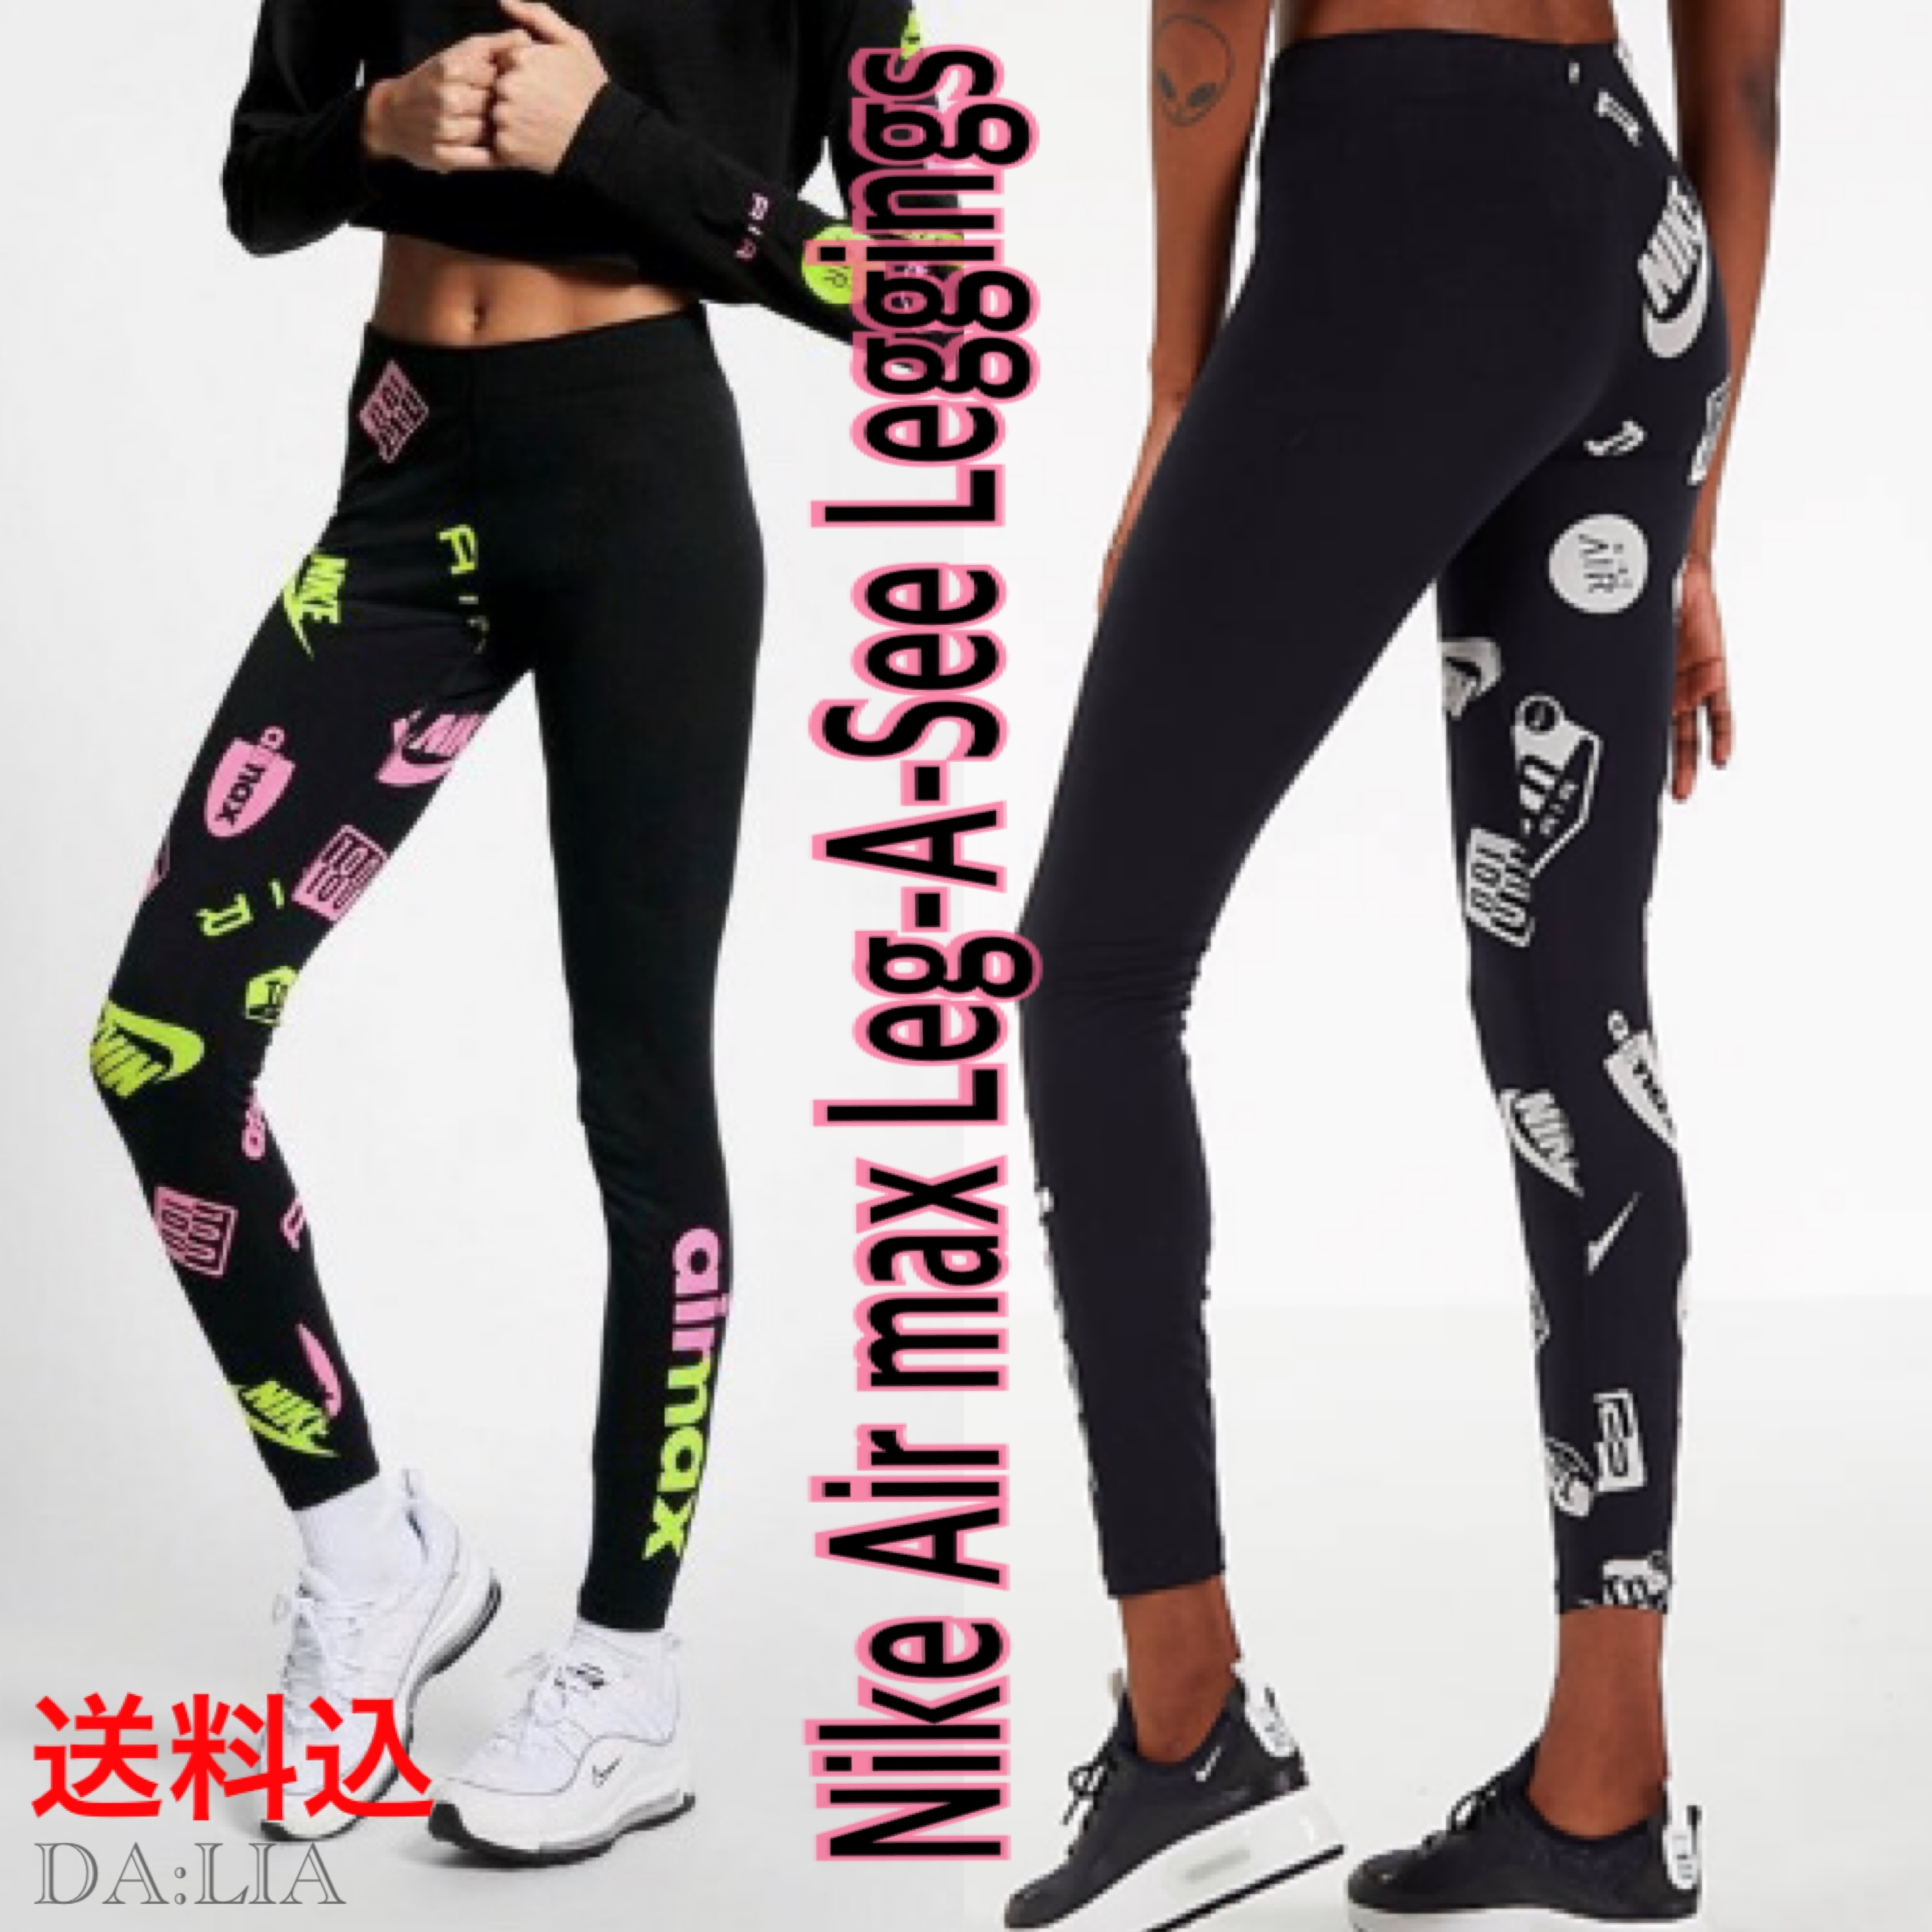 Nike AIR MAX 2019 SS Street Style Cotton Leggings Pants